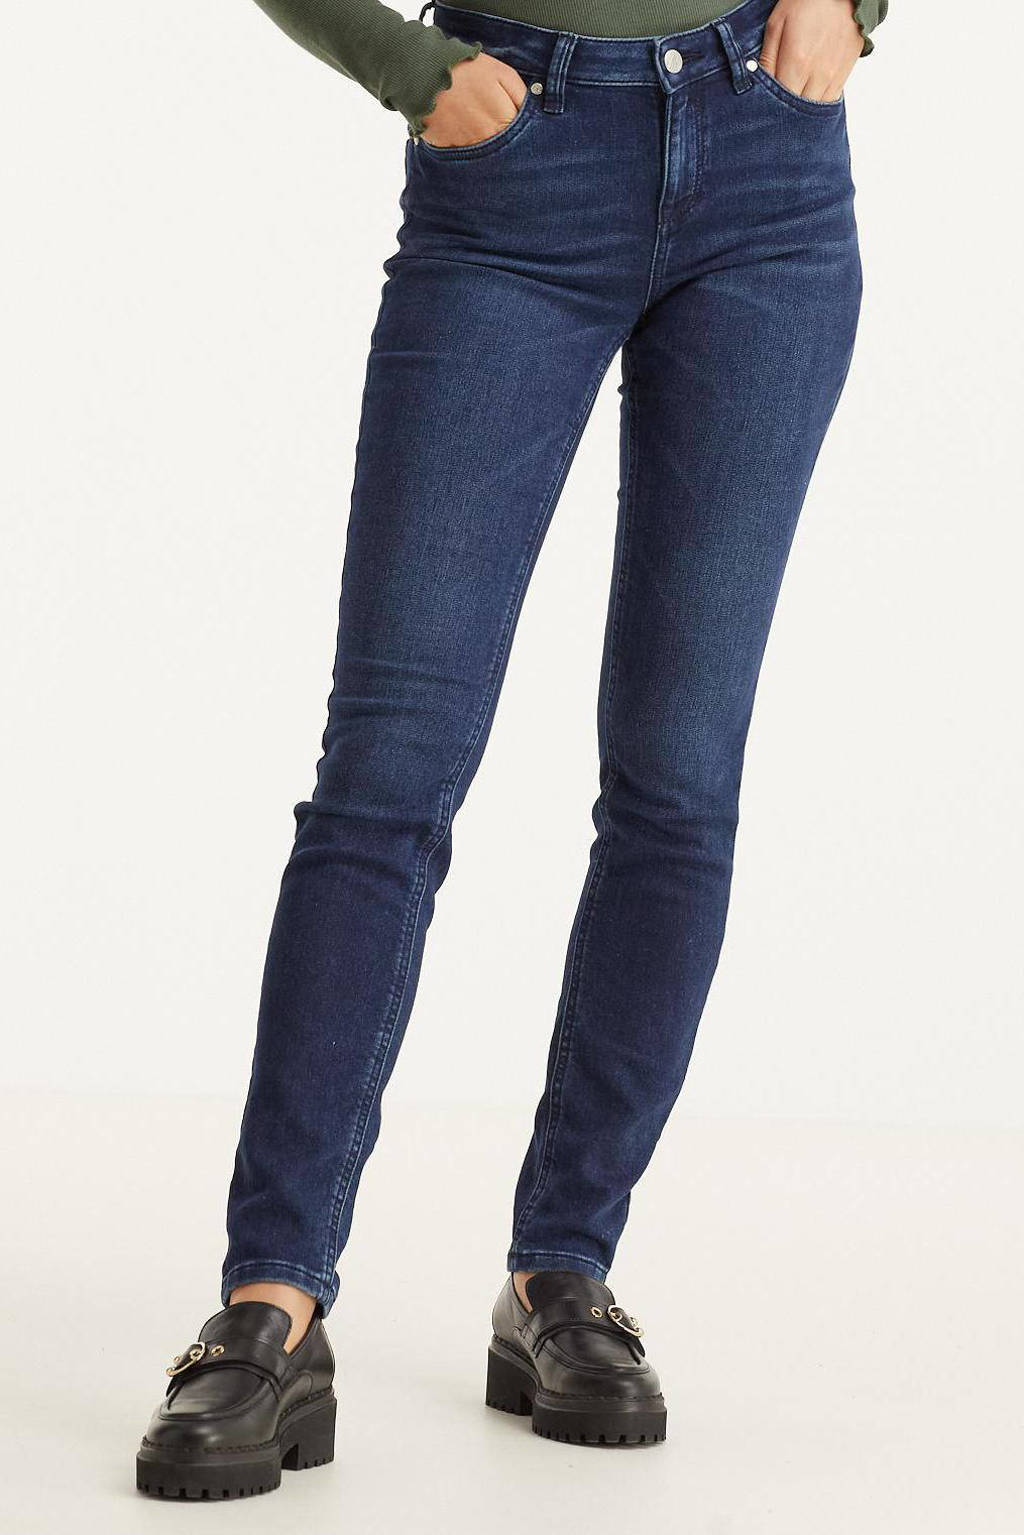 anytime slim fit jeans donkerblauw, Donkerblauw